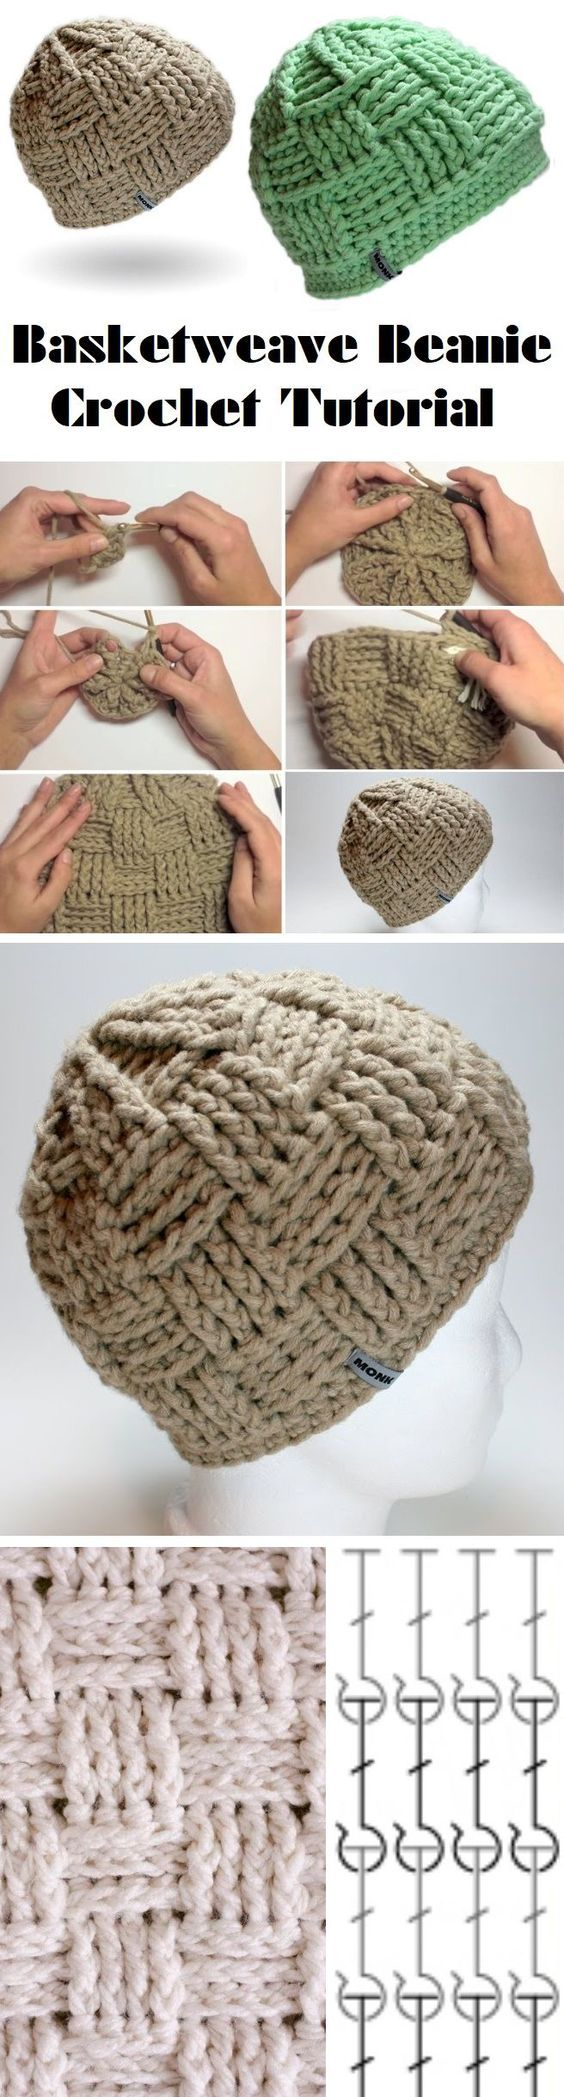 257 best crochet hatbeanie images on pinterest knit hats sully crochet hat see more basketweave beanie tutorial bankloansurffo Choice Image